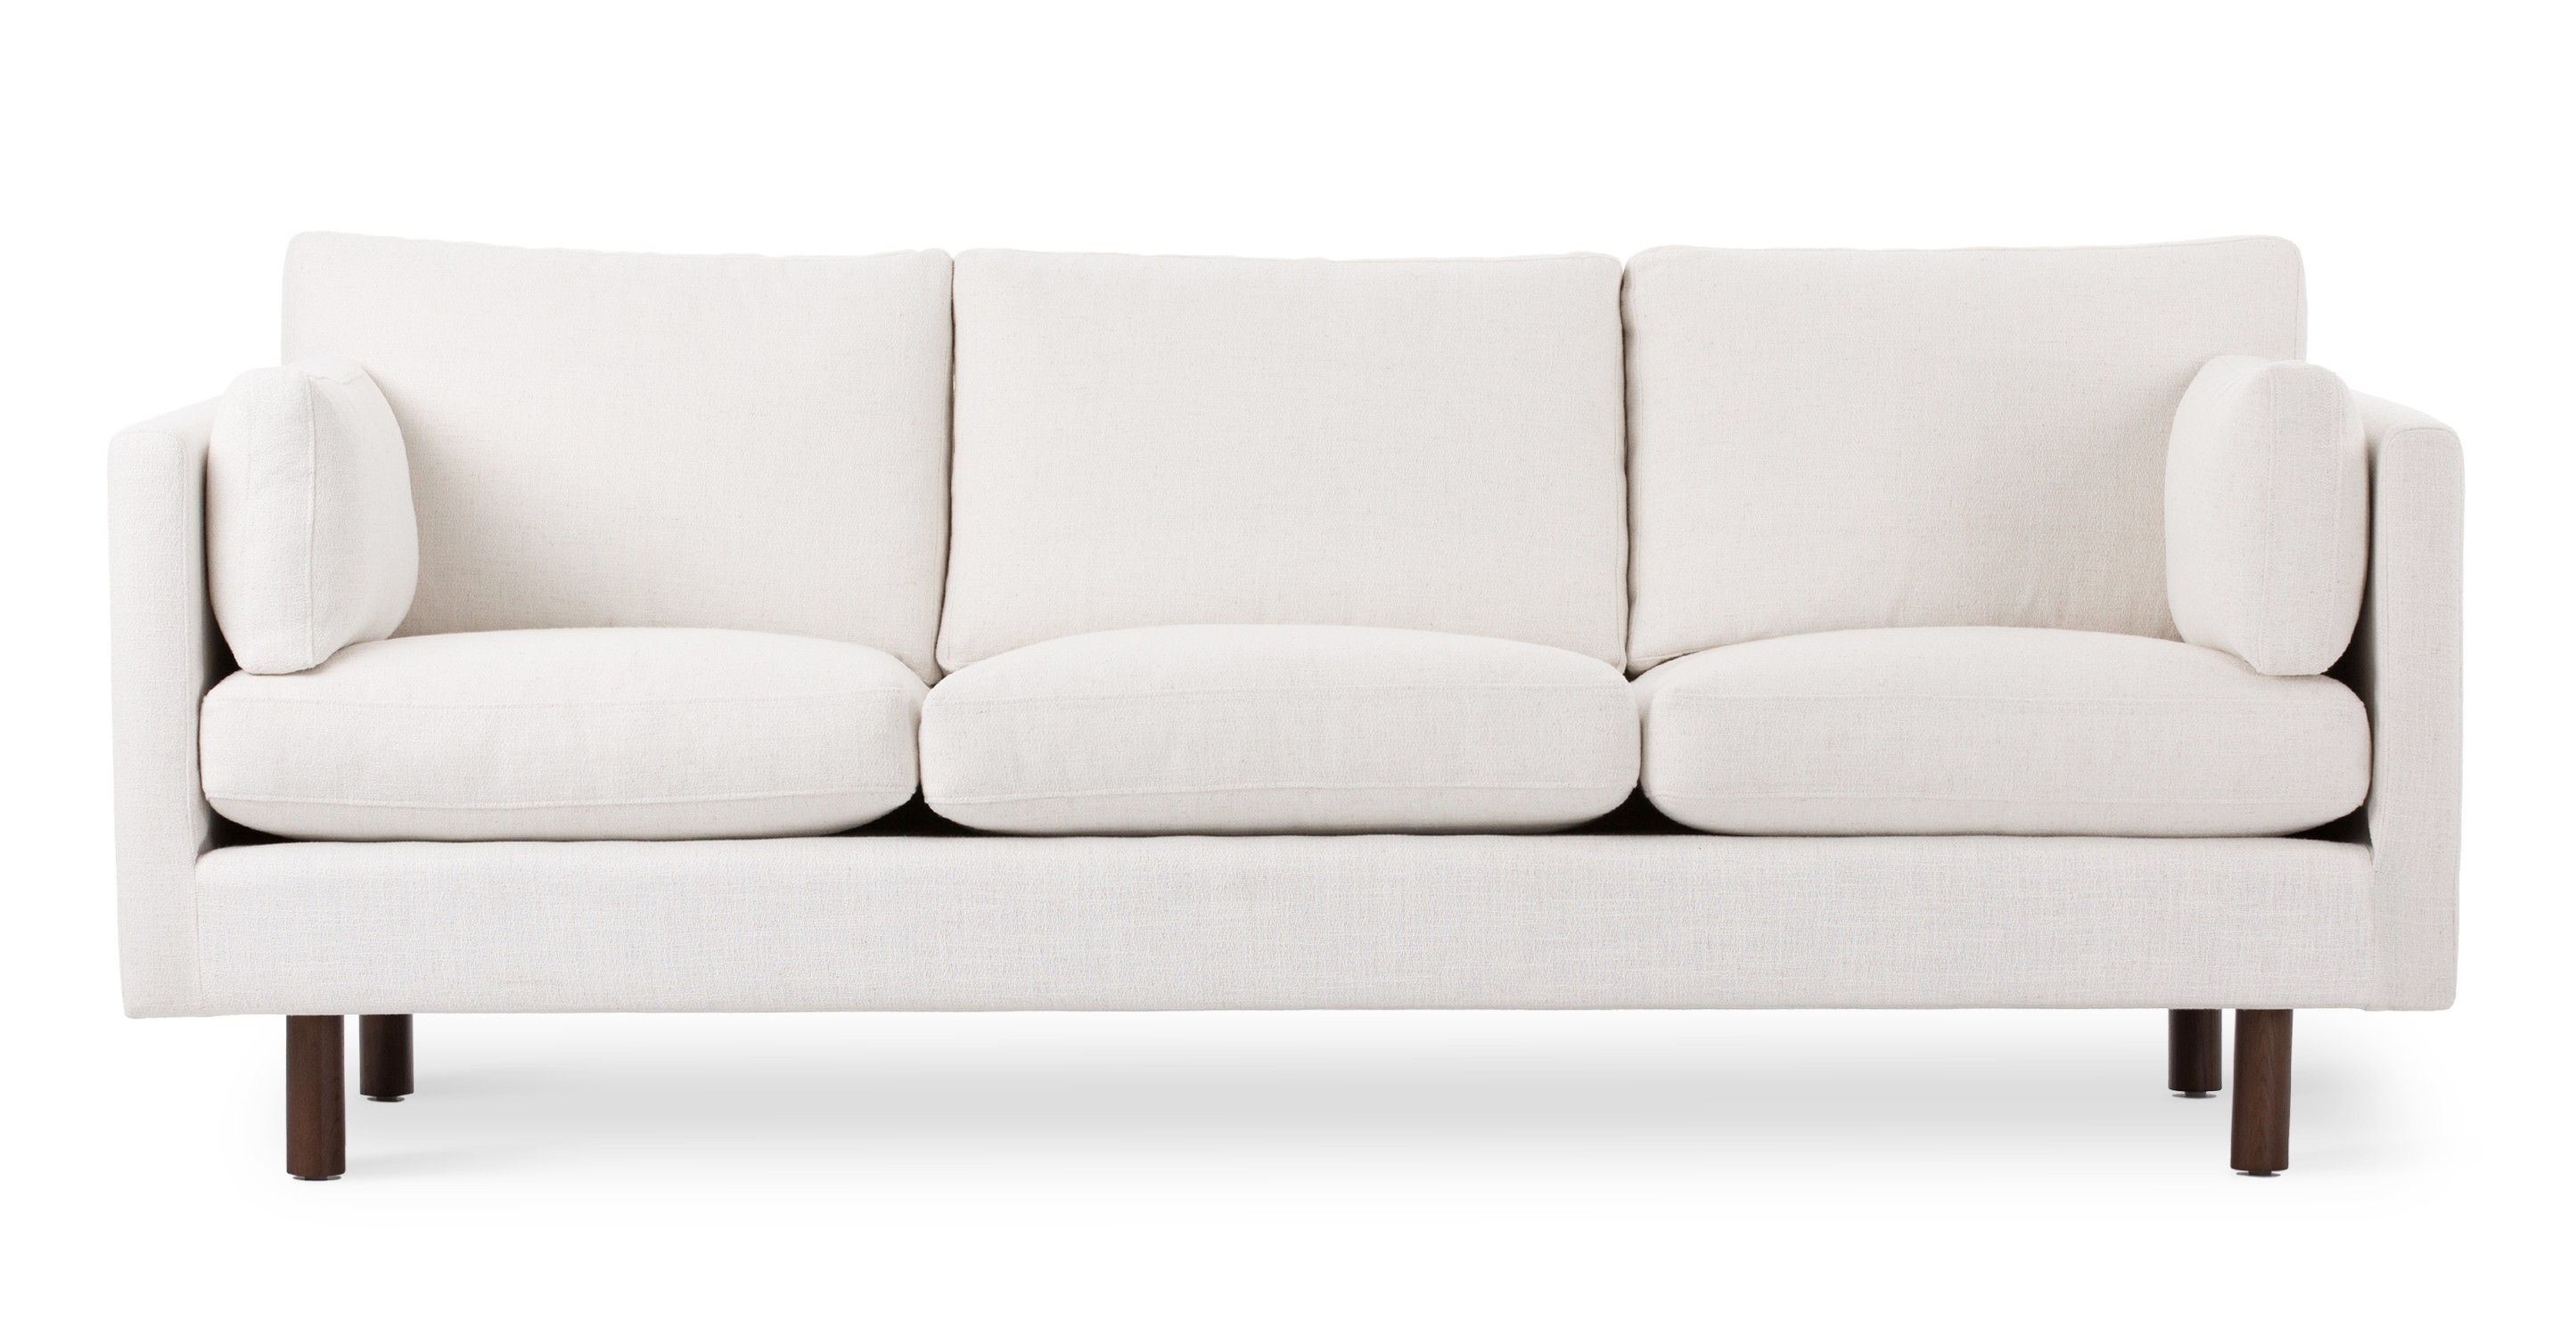 nova creamy white sofa - sofas - article | modern, mid-century and VIUTBNB